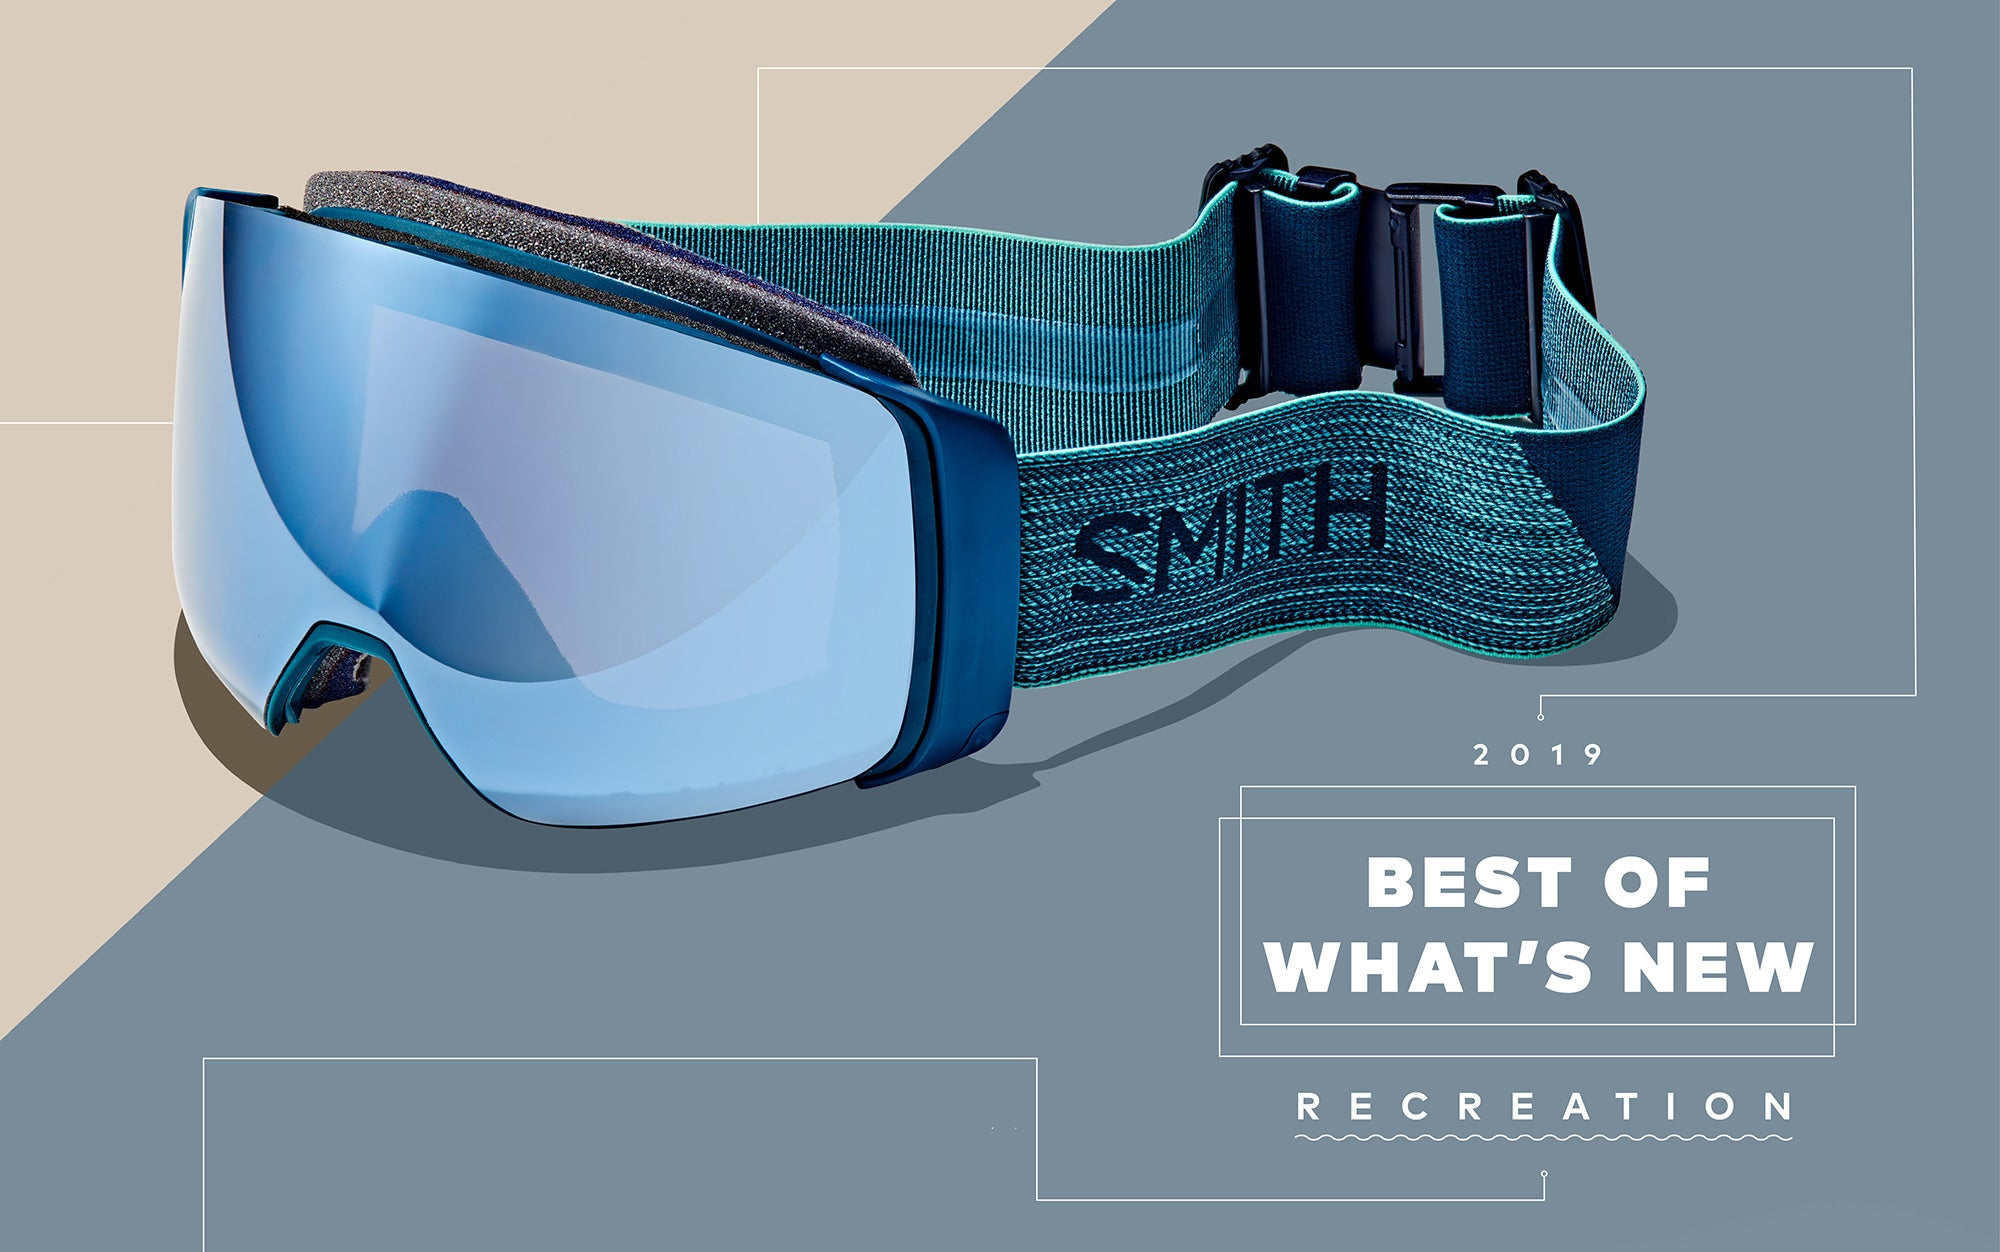 The best recreation innovations of 2019